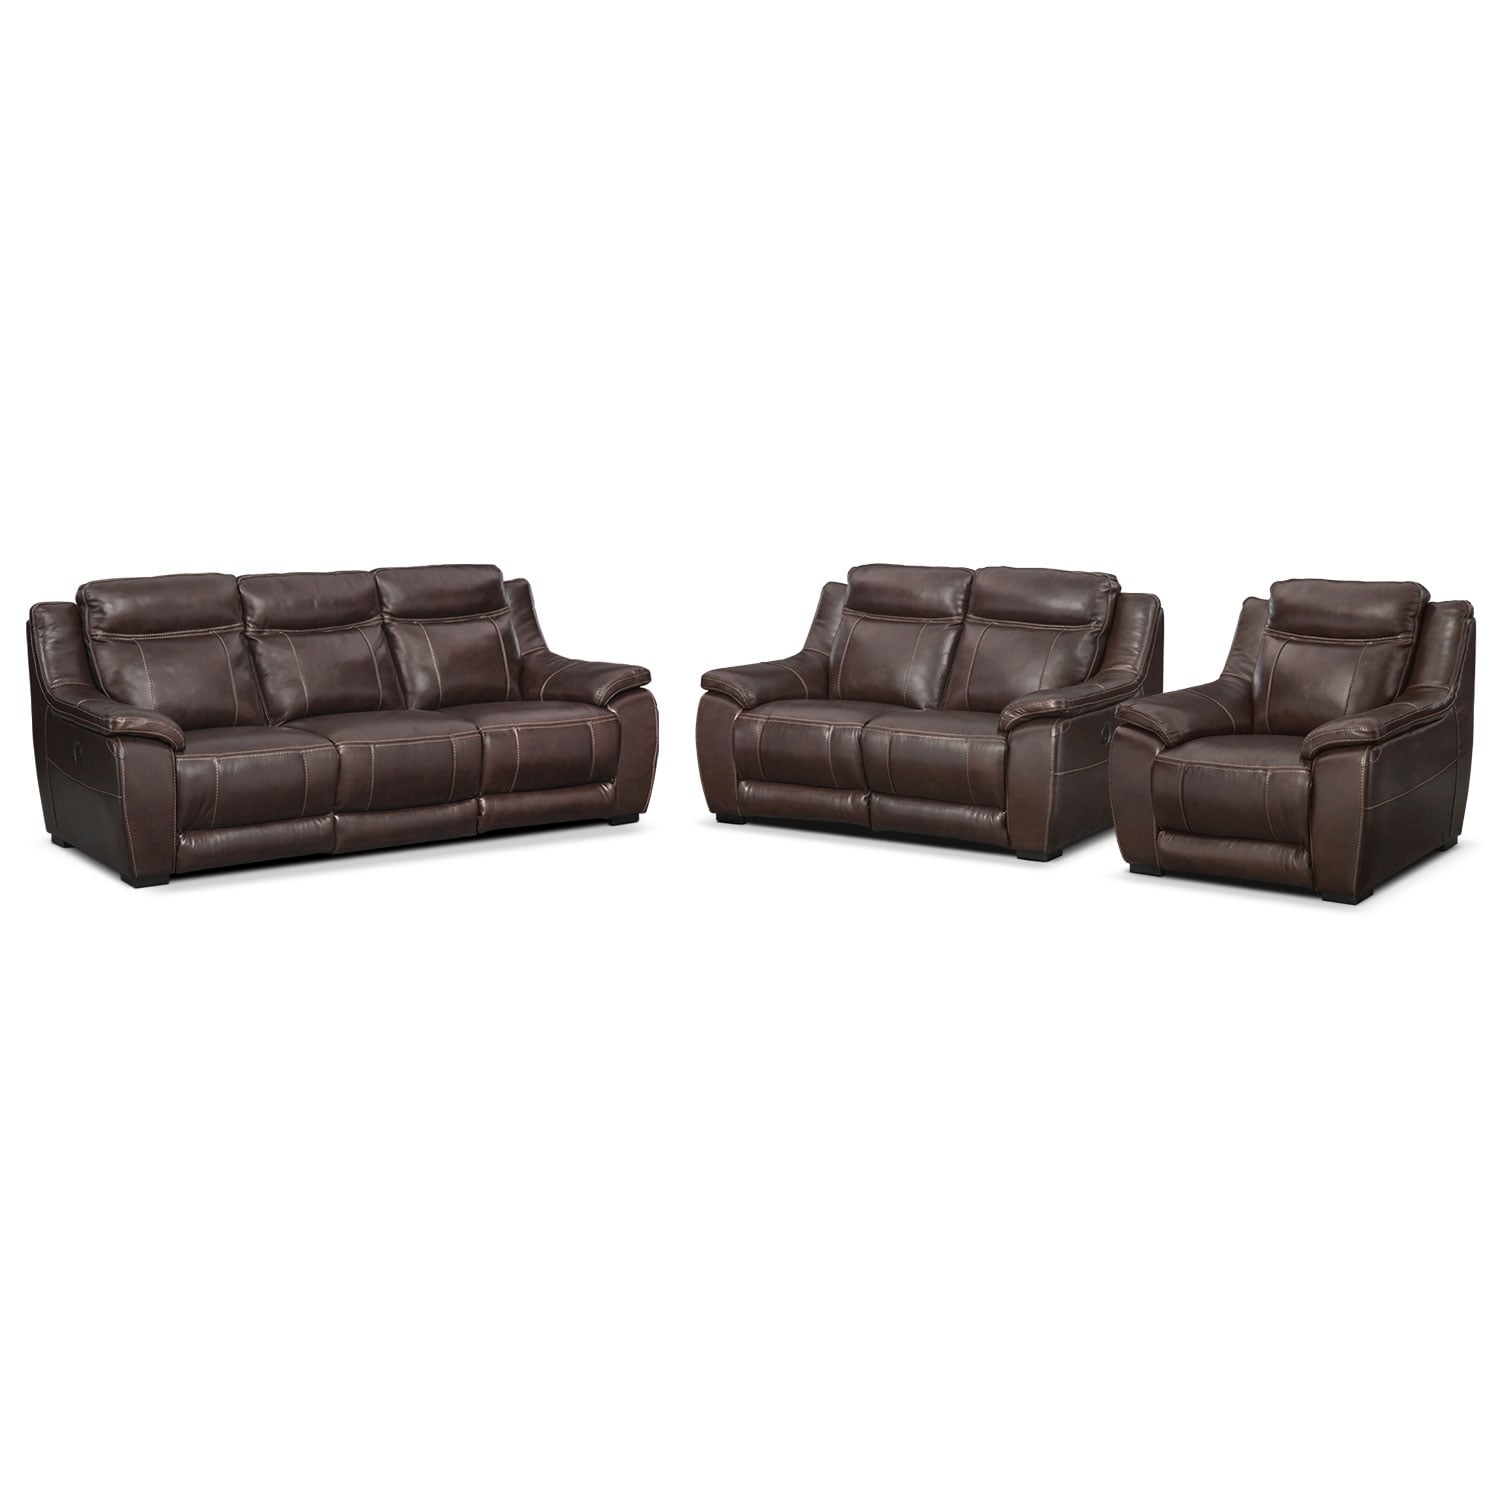 Lido power reclining sofa reclining loveseat and recliner set brown american signature Power loveseat recliner